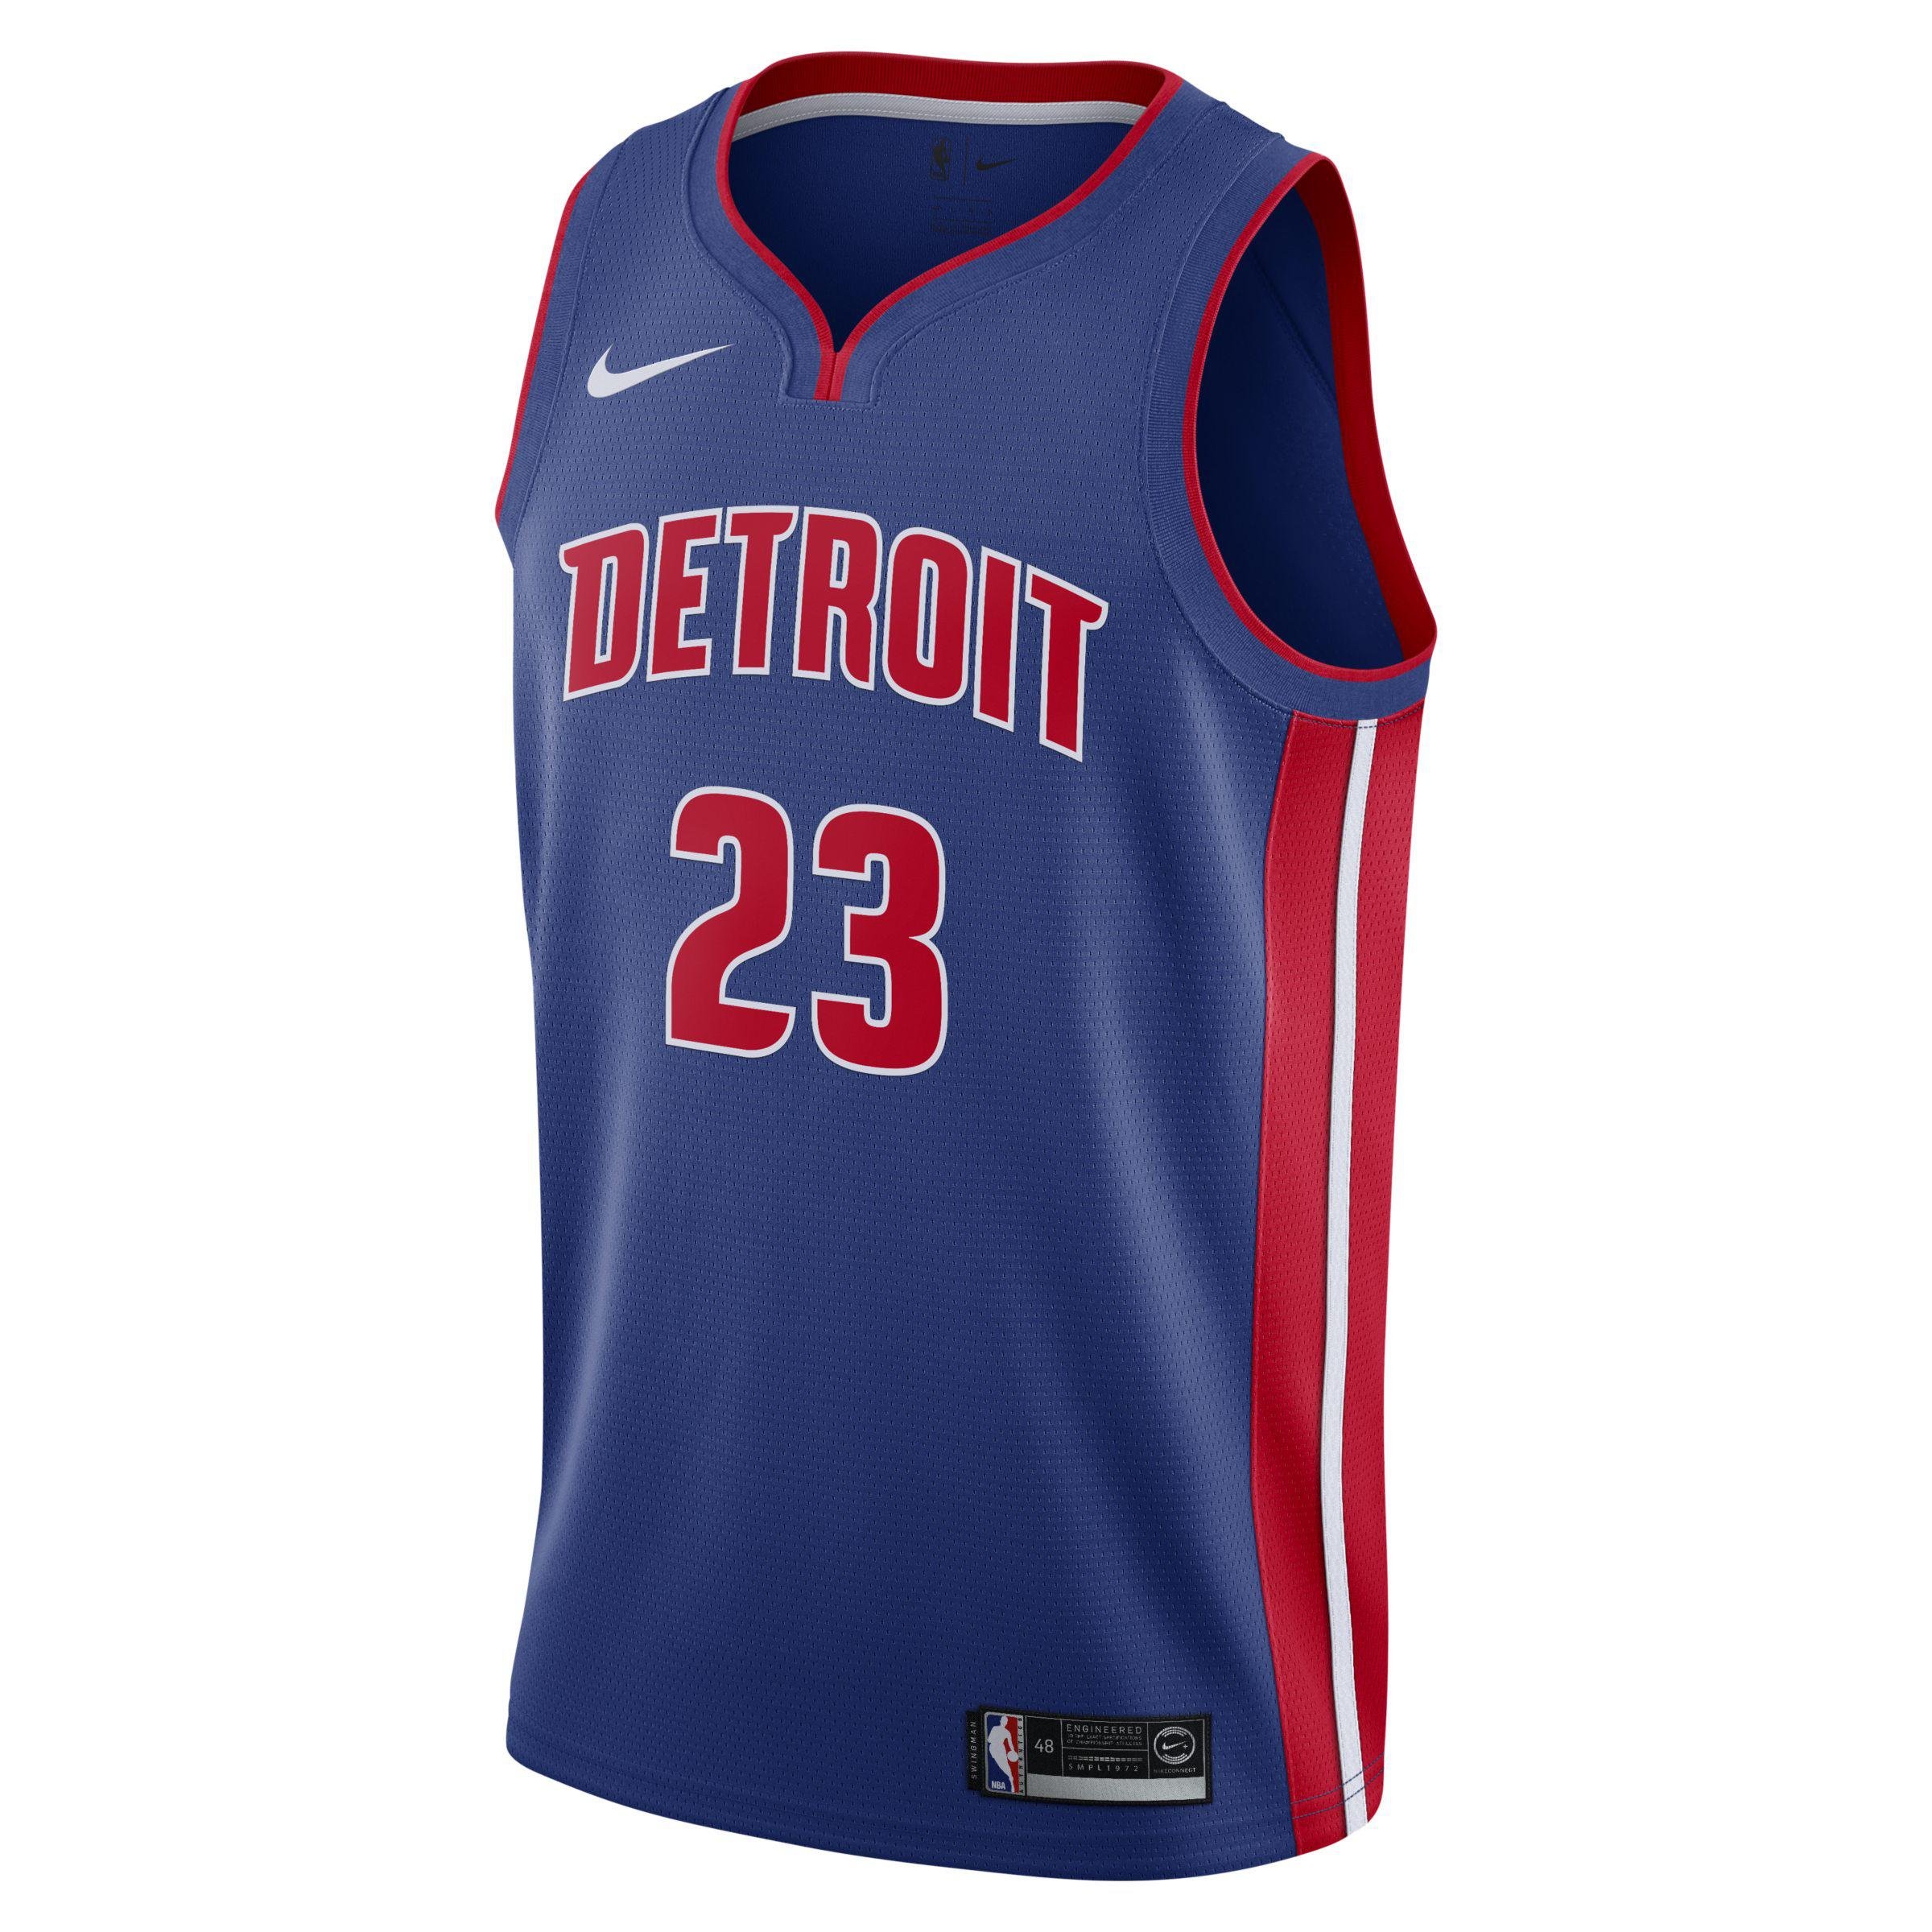 6290c9c54a1c Nike. Men s Blue Blake Griffin Icon Edition Swingman (detroit Pistons) Nba  Connected Jersey